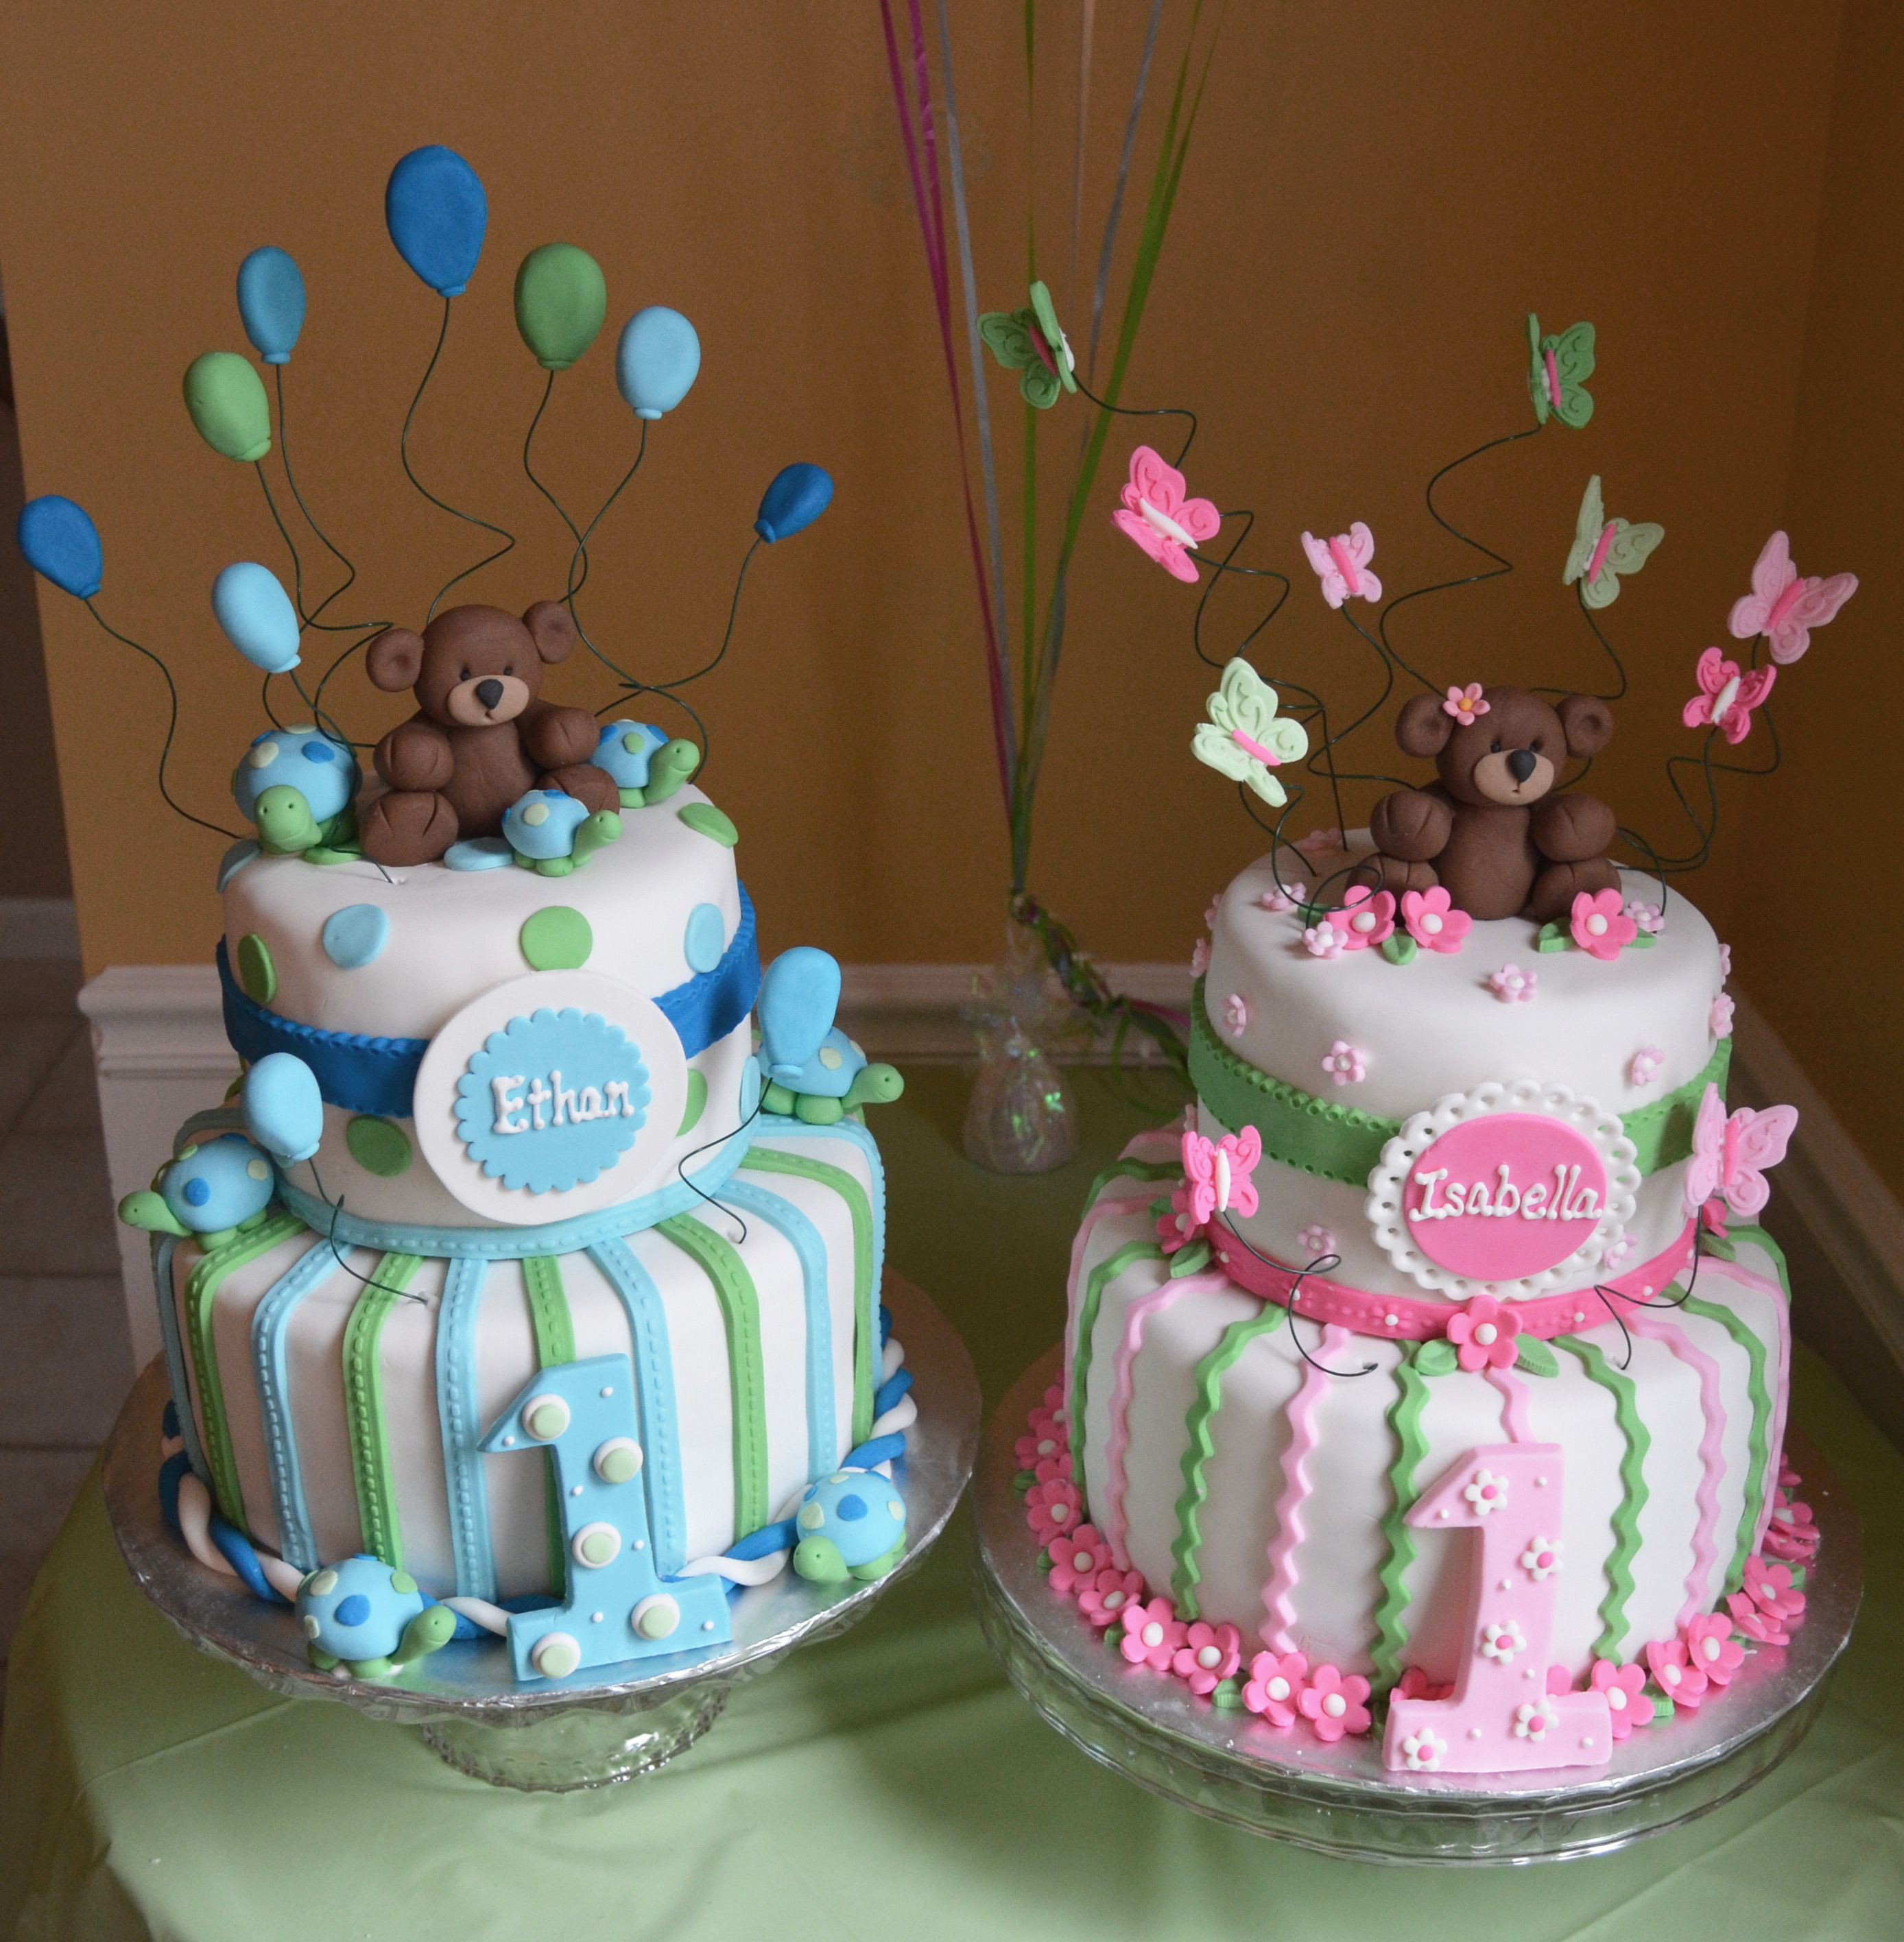 Cake Ideas For Boy Girl Twins : Twin 1 year birthday cakes; boy and girl; bears, turtles ...